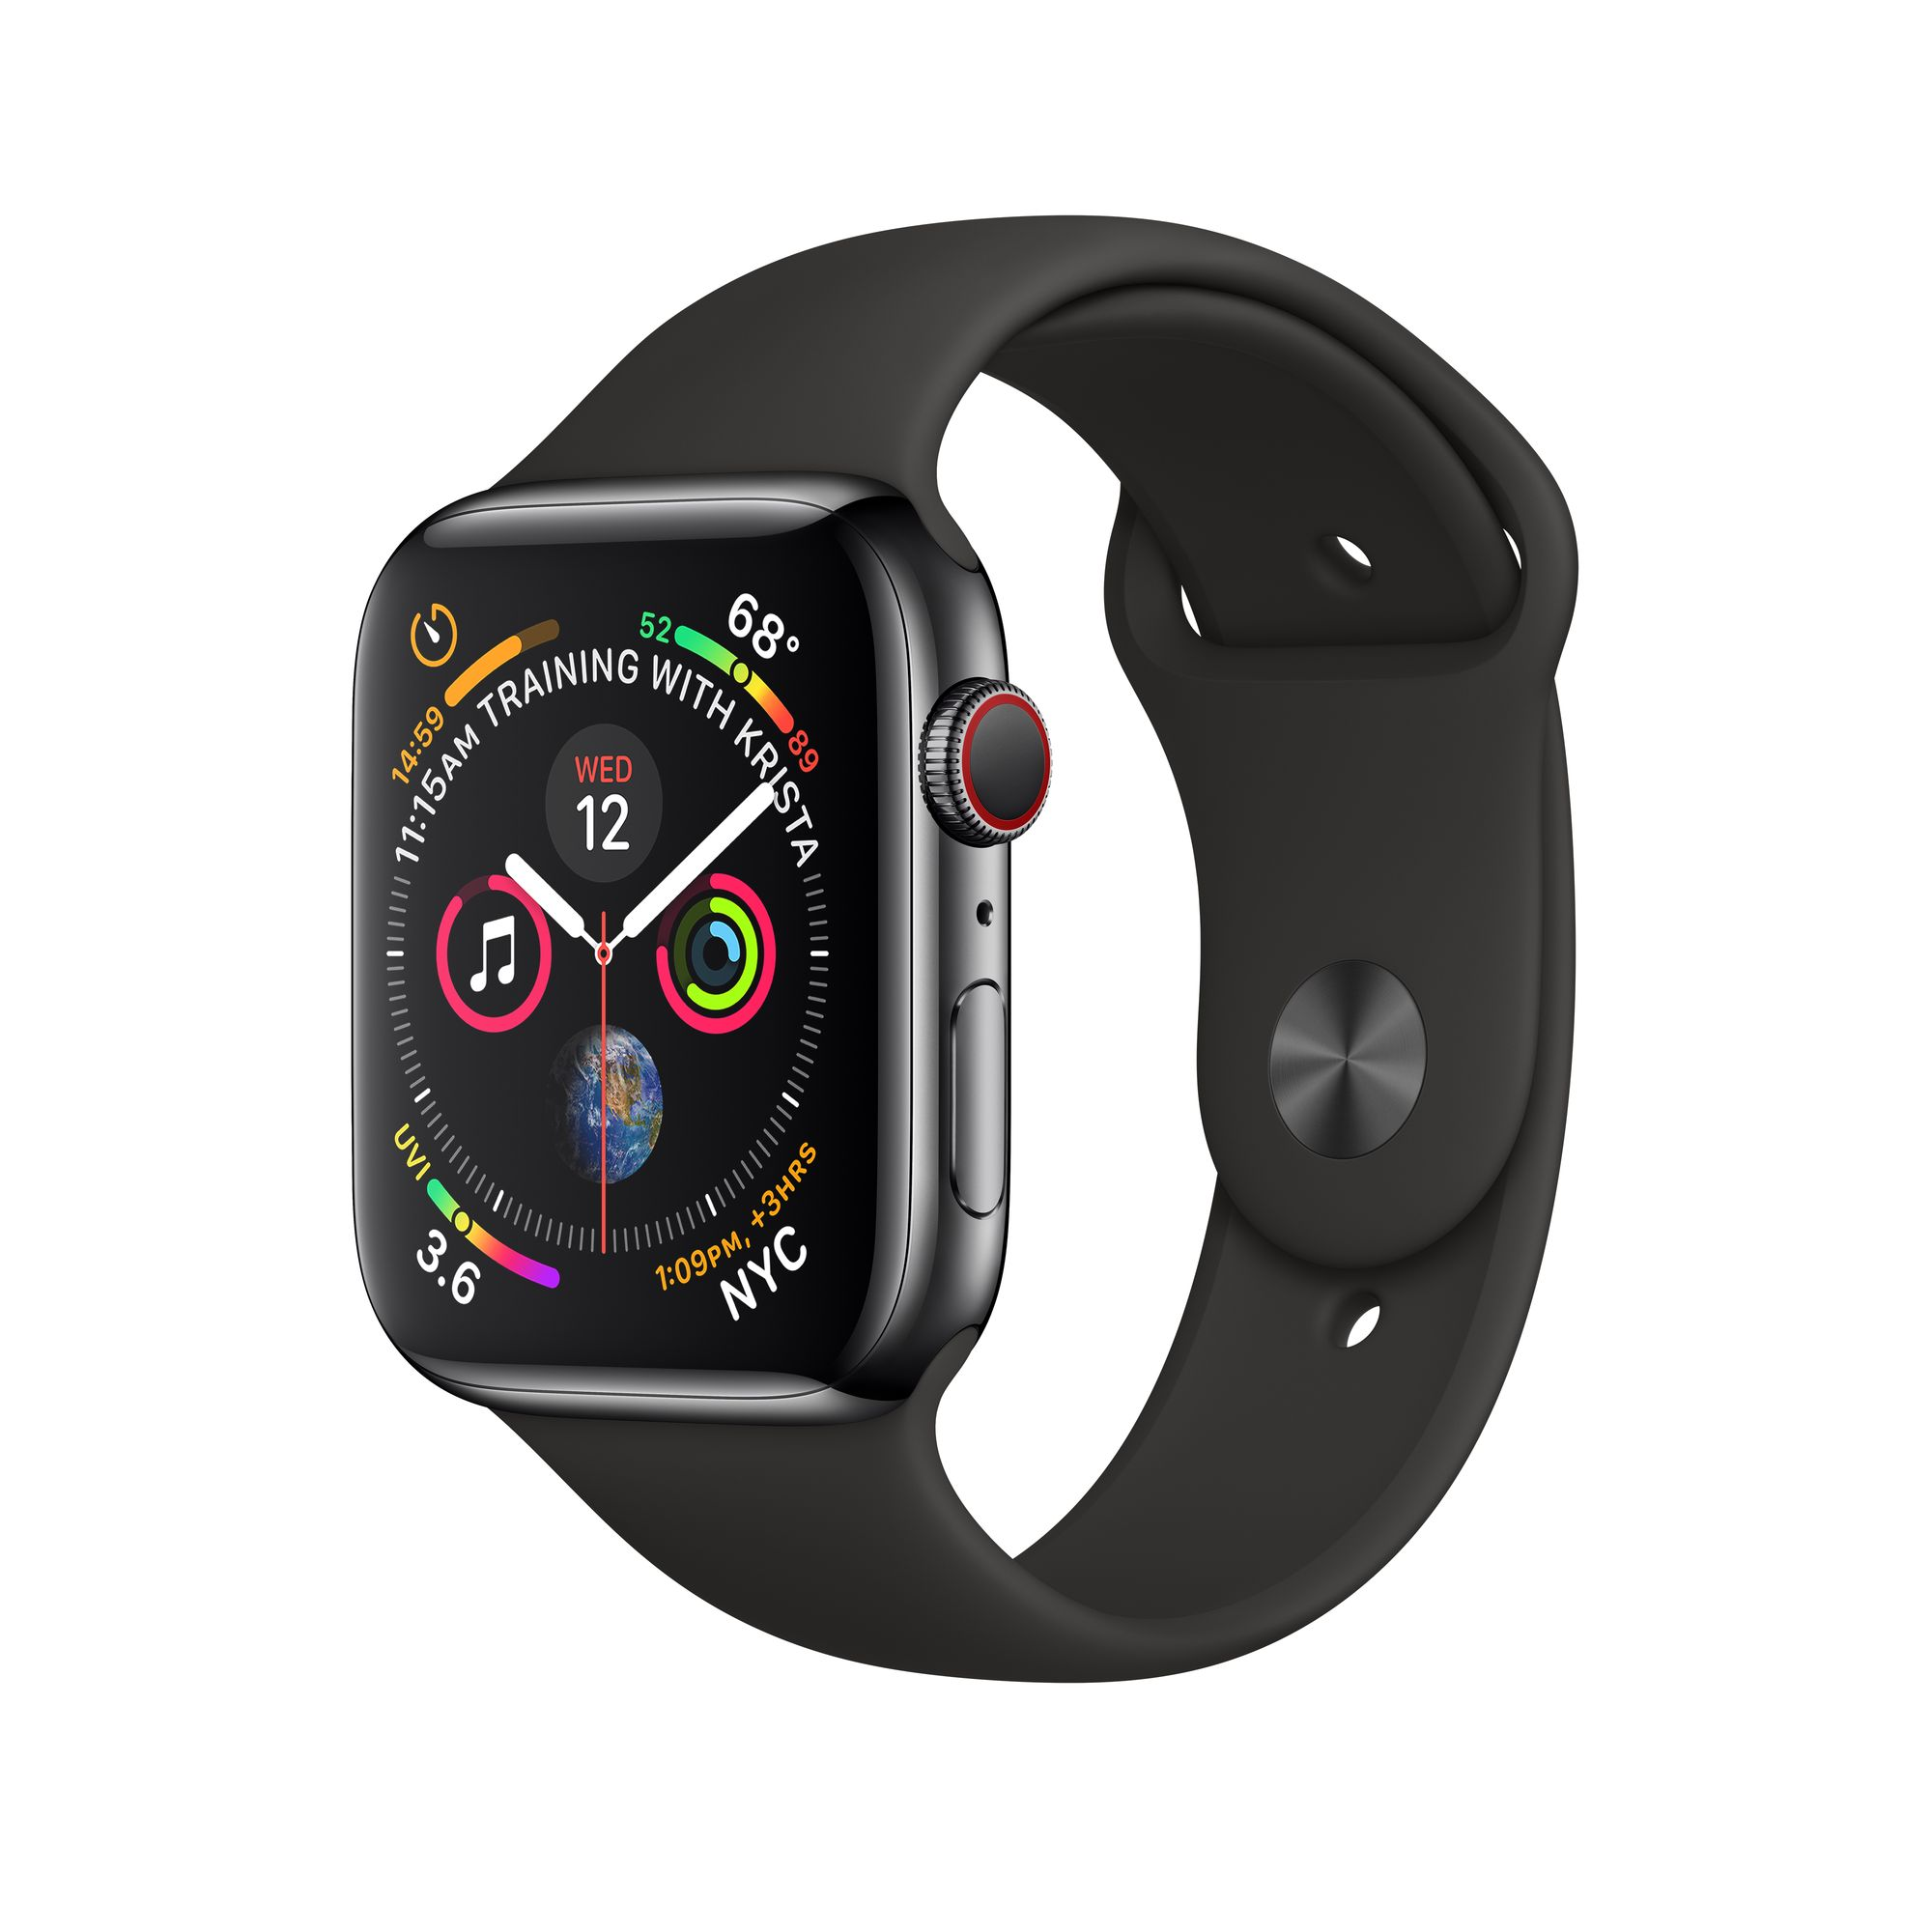 Apple Watch Series 4 Gps Cellular 40mm Space Black Stainless Steel Case With Black Sport Band